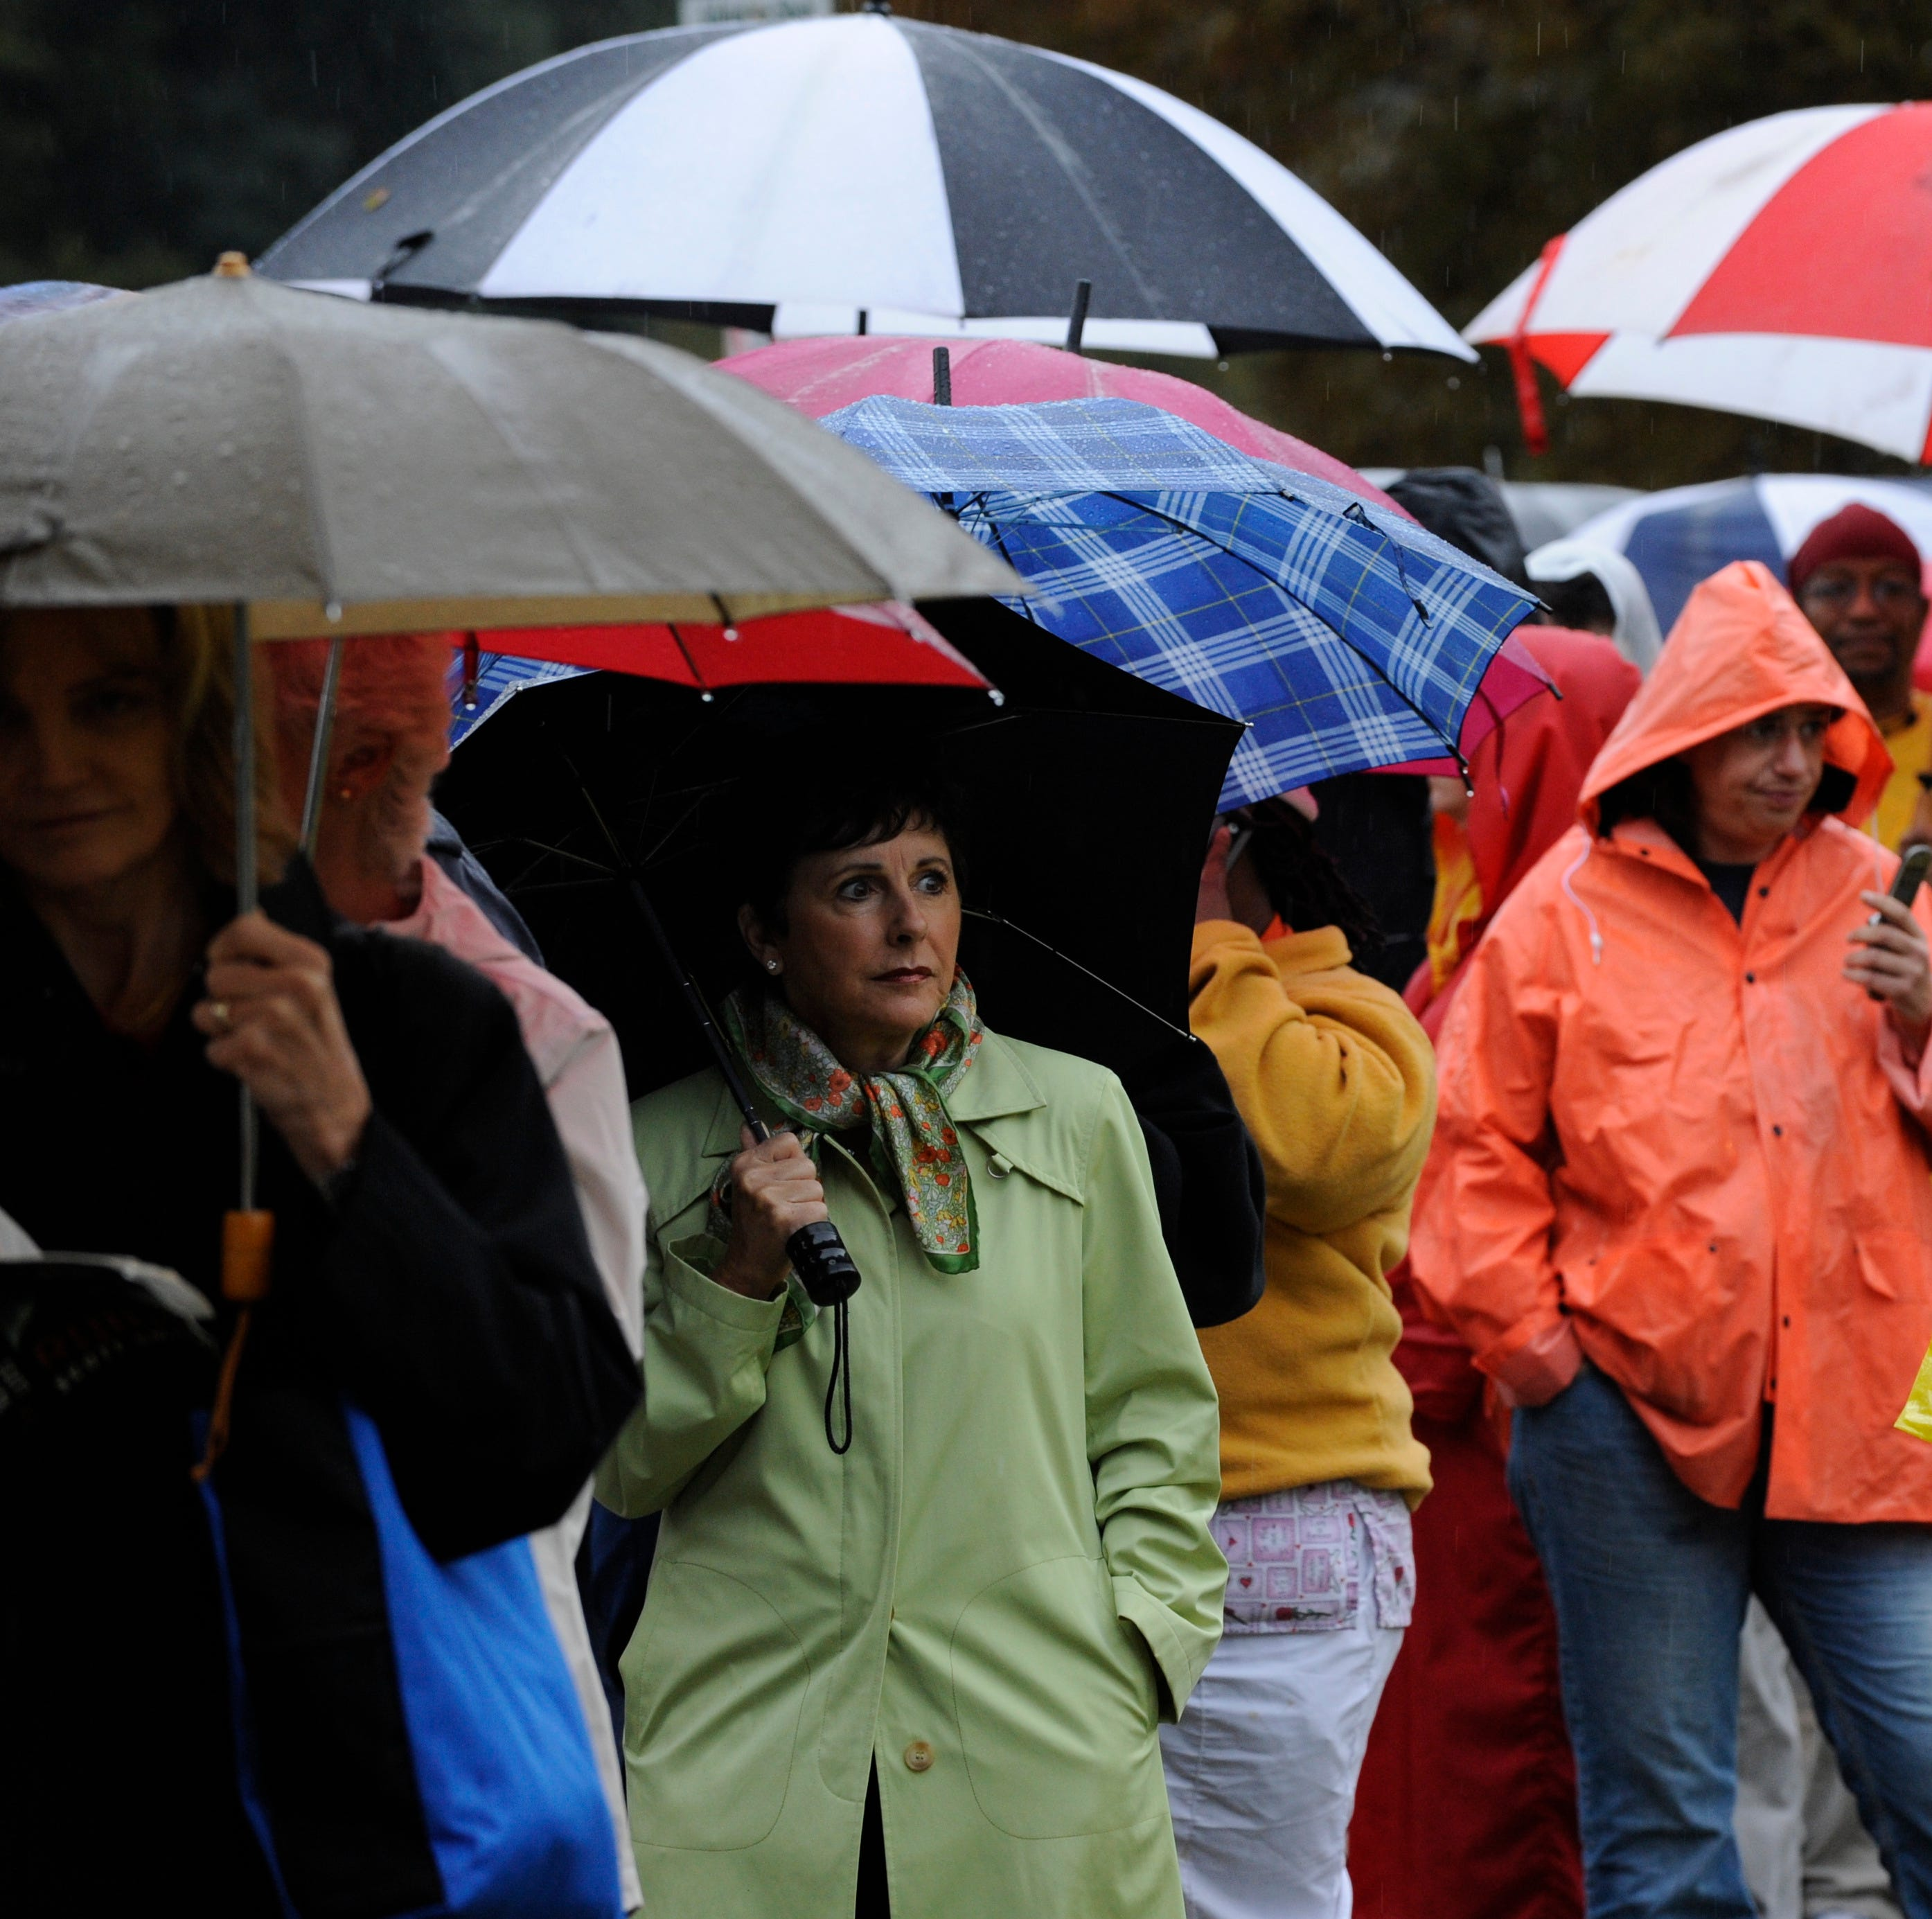 Election Day weather: Want a Democratic 'blue wave?' Hope for clear skies.